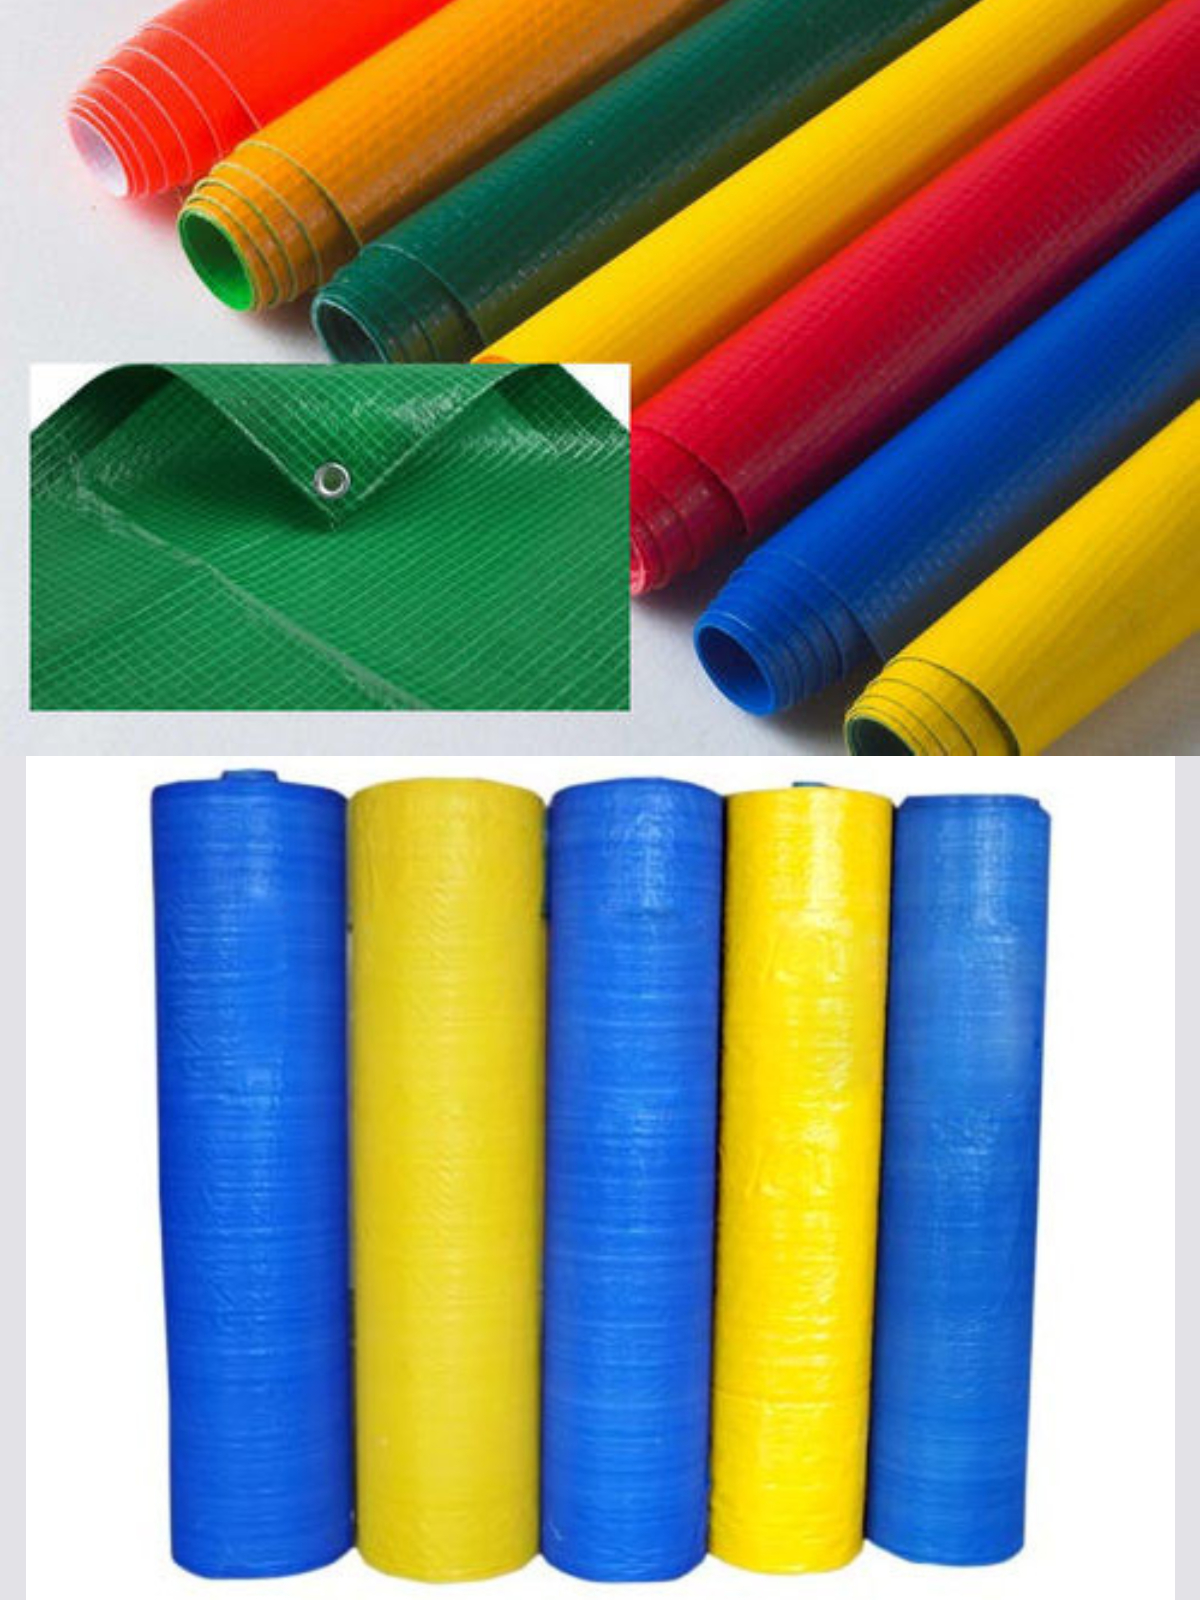 Stocklot Of HDPE Laminated Fabric